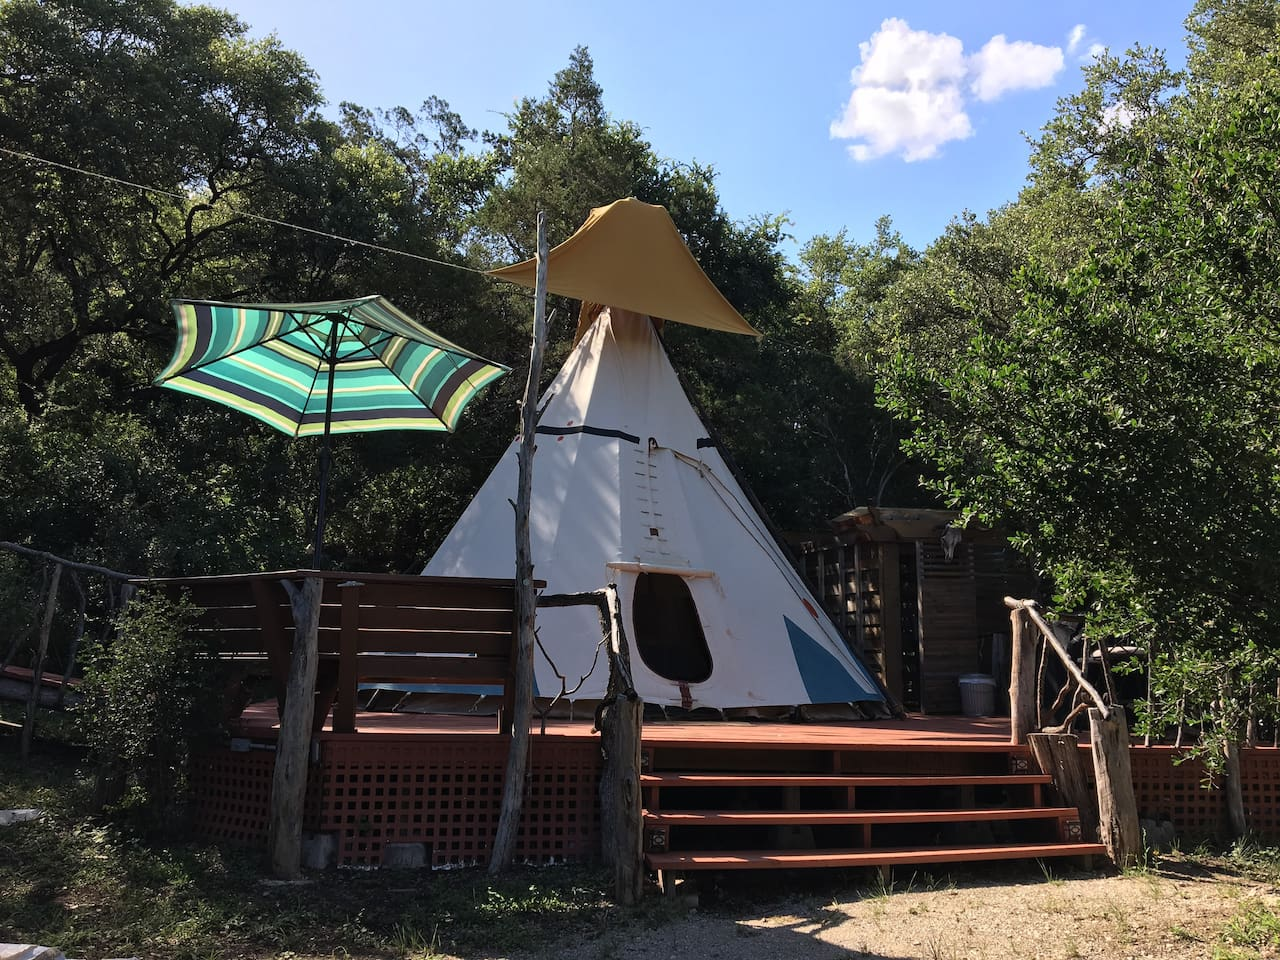 The Tee Pee is built on a spacious deck with a bench, grill, table & semi-outdoor bathroom.   It has a rain cap on top to keep it dry during sudden rains